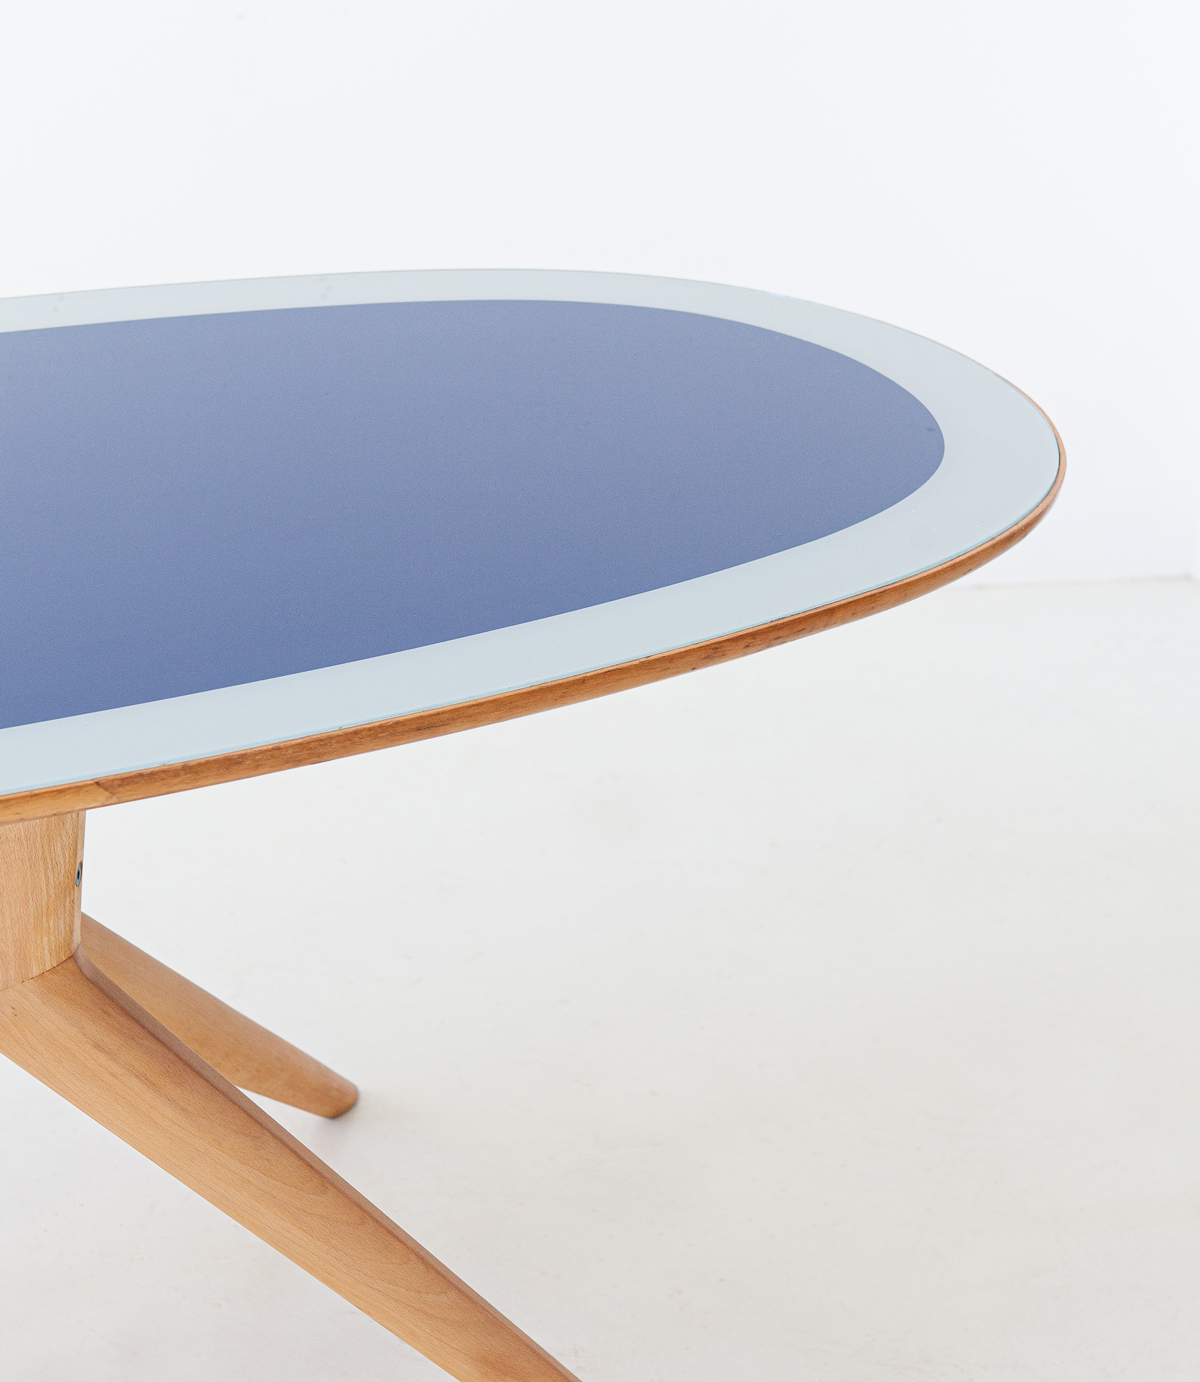 1950s-elliptical-dinin-table-with-blue-glass-top-2-t89